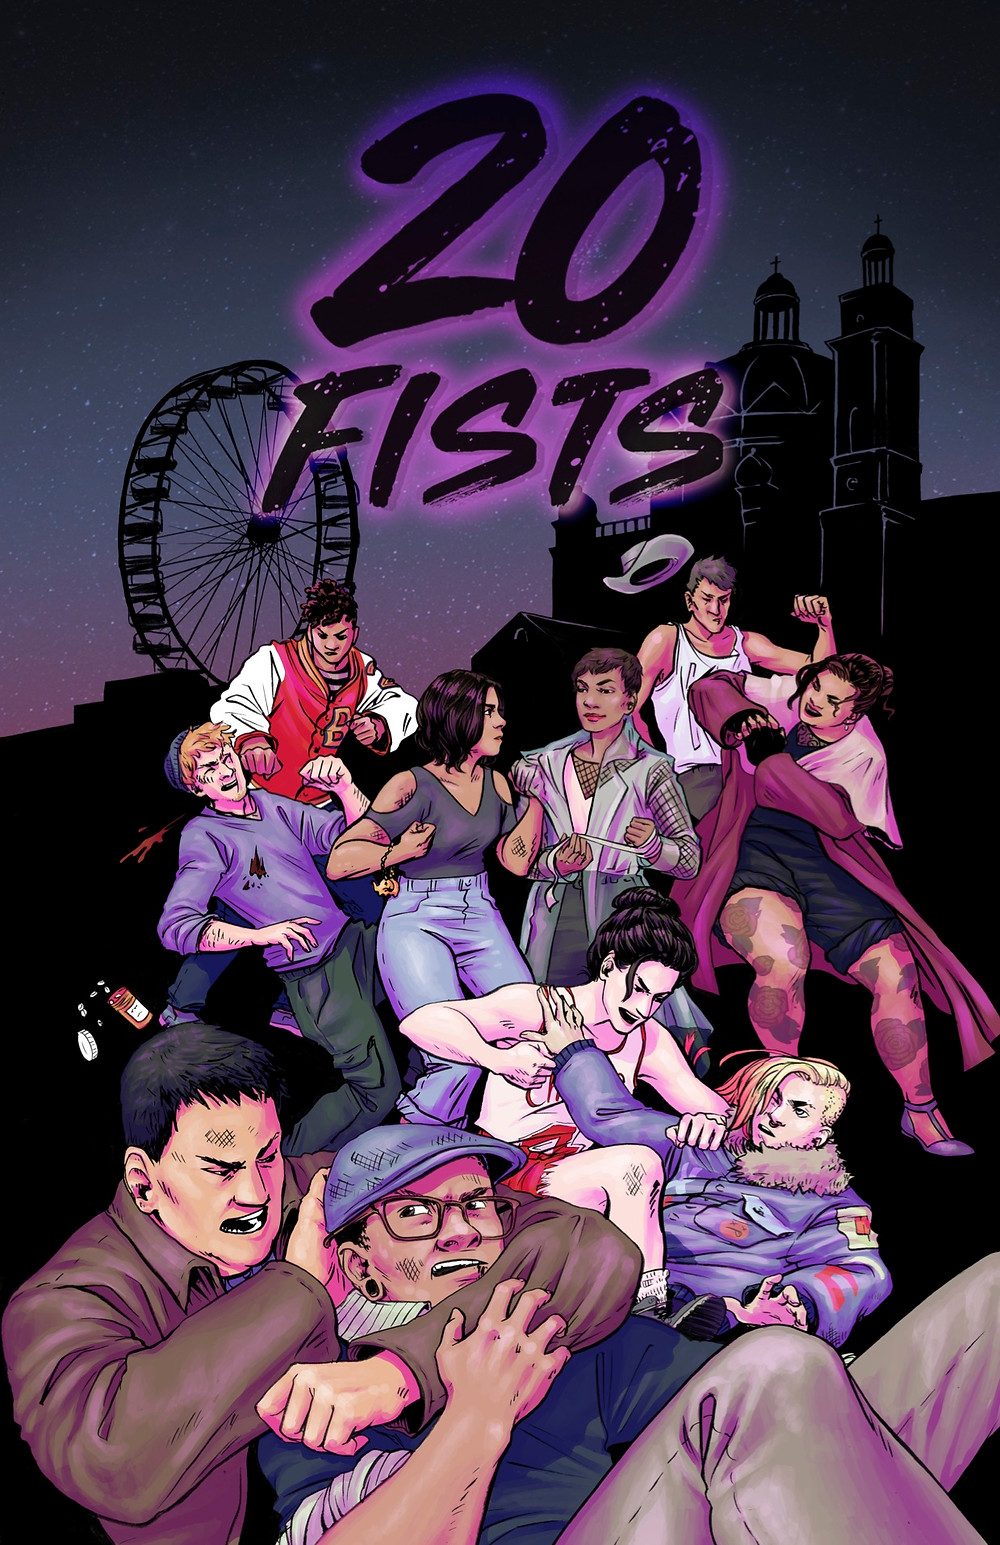 20 Fists #1, cover, self-published, White/Baumann